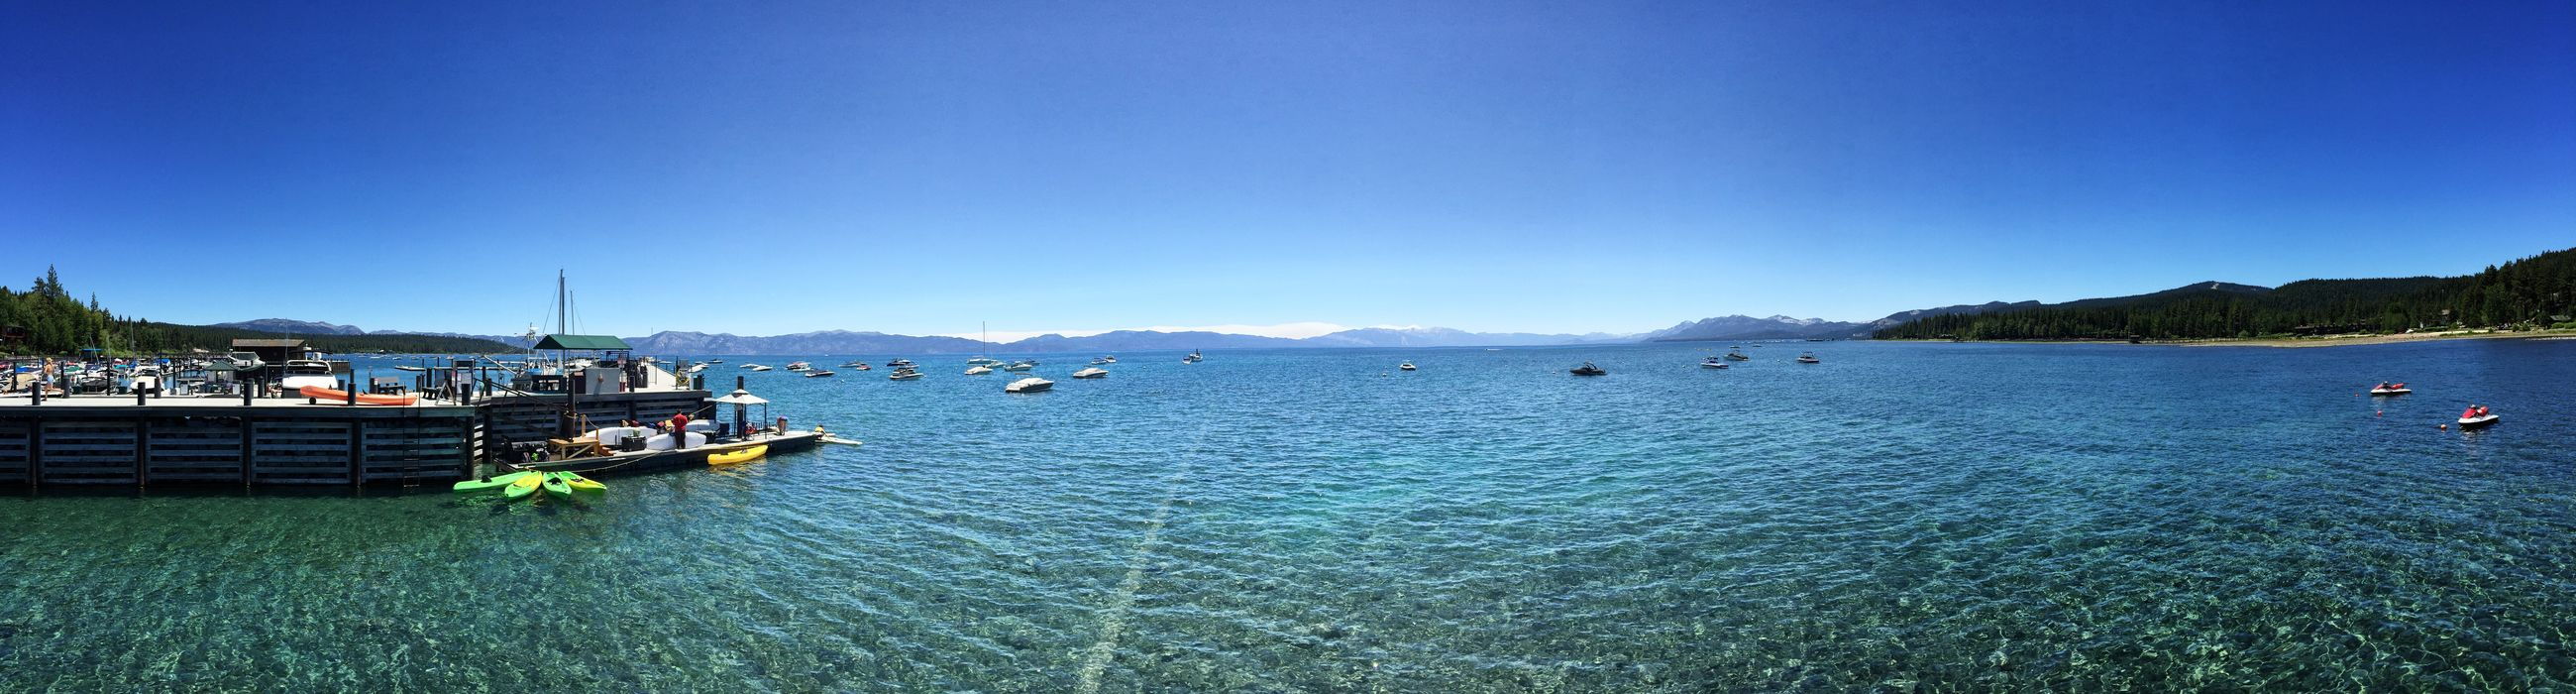 Beauty In Nature Blue Boat Clear Sky Day Horizon Over Land Lake Lake Tahoe Lake View Mountain Range Nature Non-urban Scene Ocean Scenics Sea Seascape Shore Sky Tranquil Scene Tranquility Transportation Water Waterfront